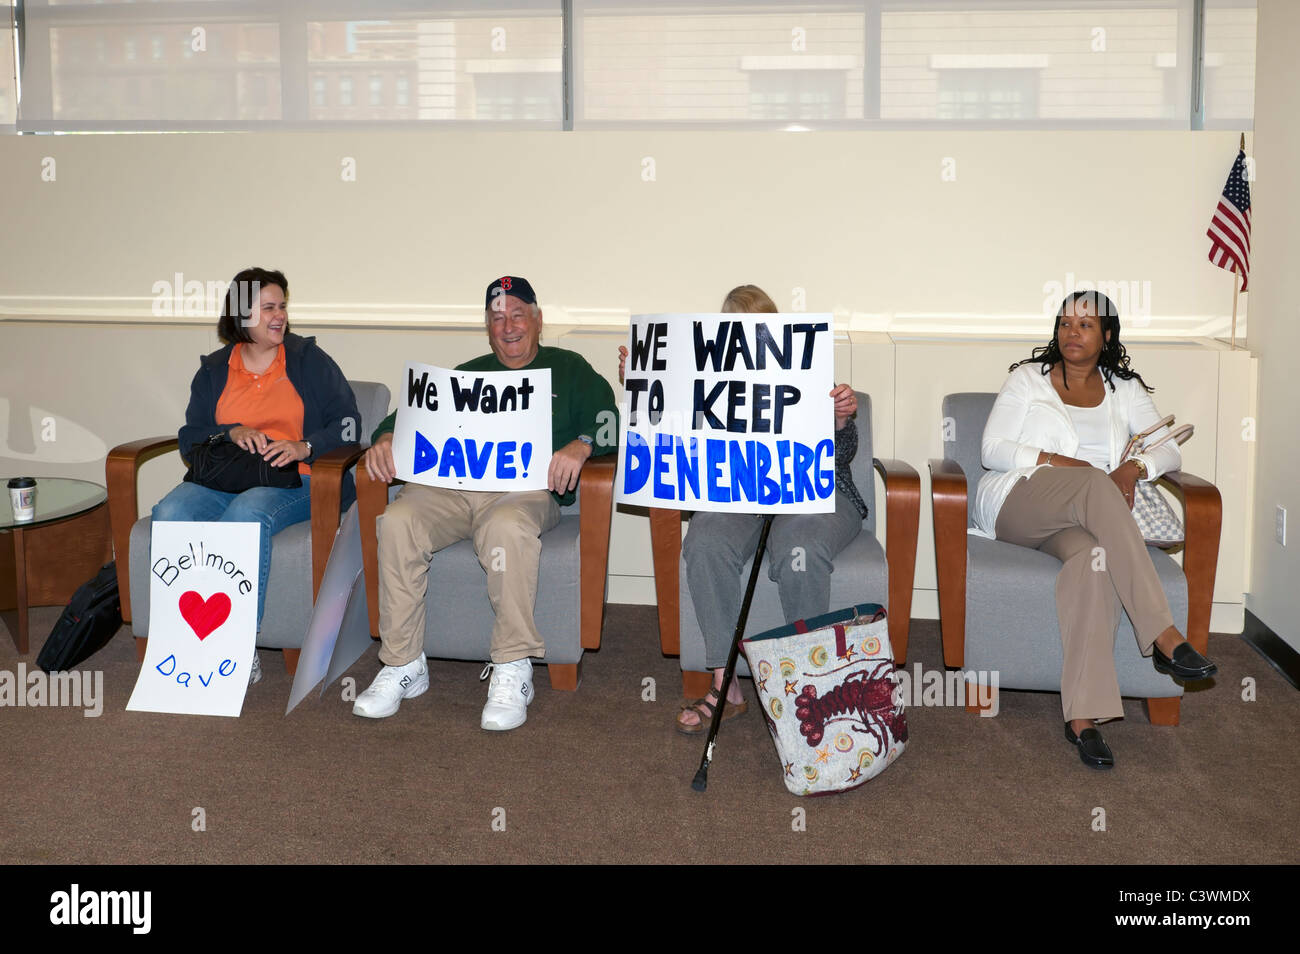 In Nassau County Legislative Building waiting room, people with posters supporting Dave Denenberg, May 9, 2011, - Stock Image